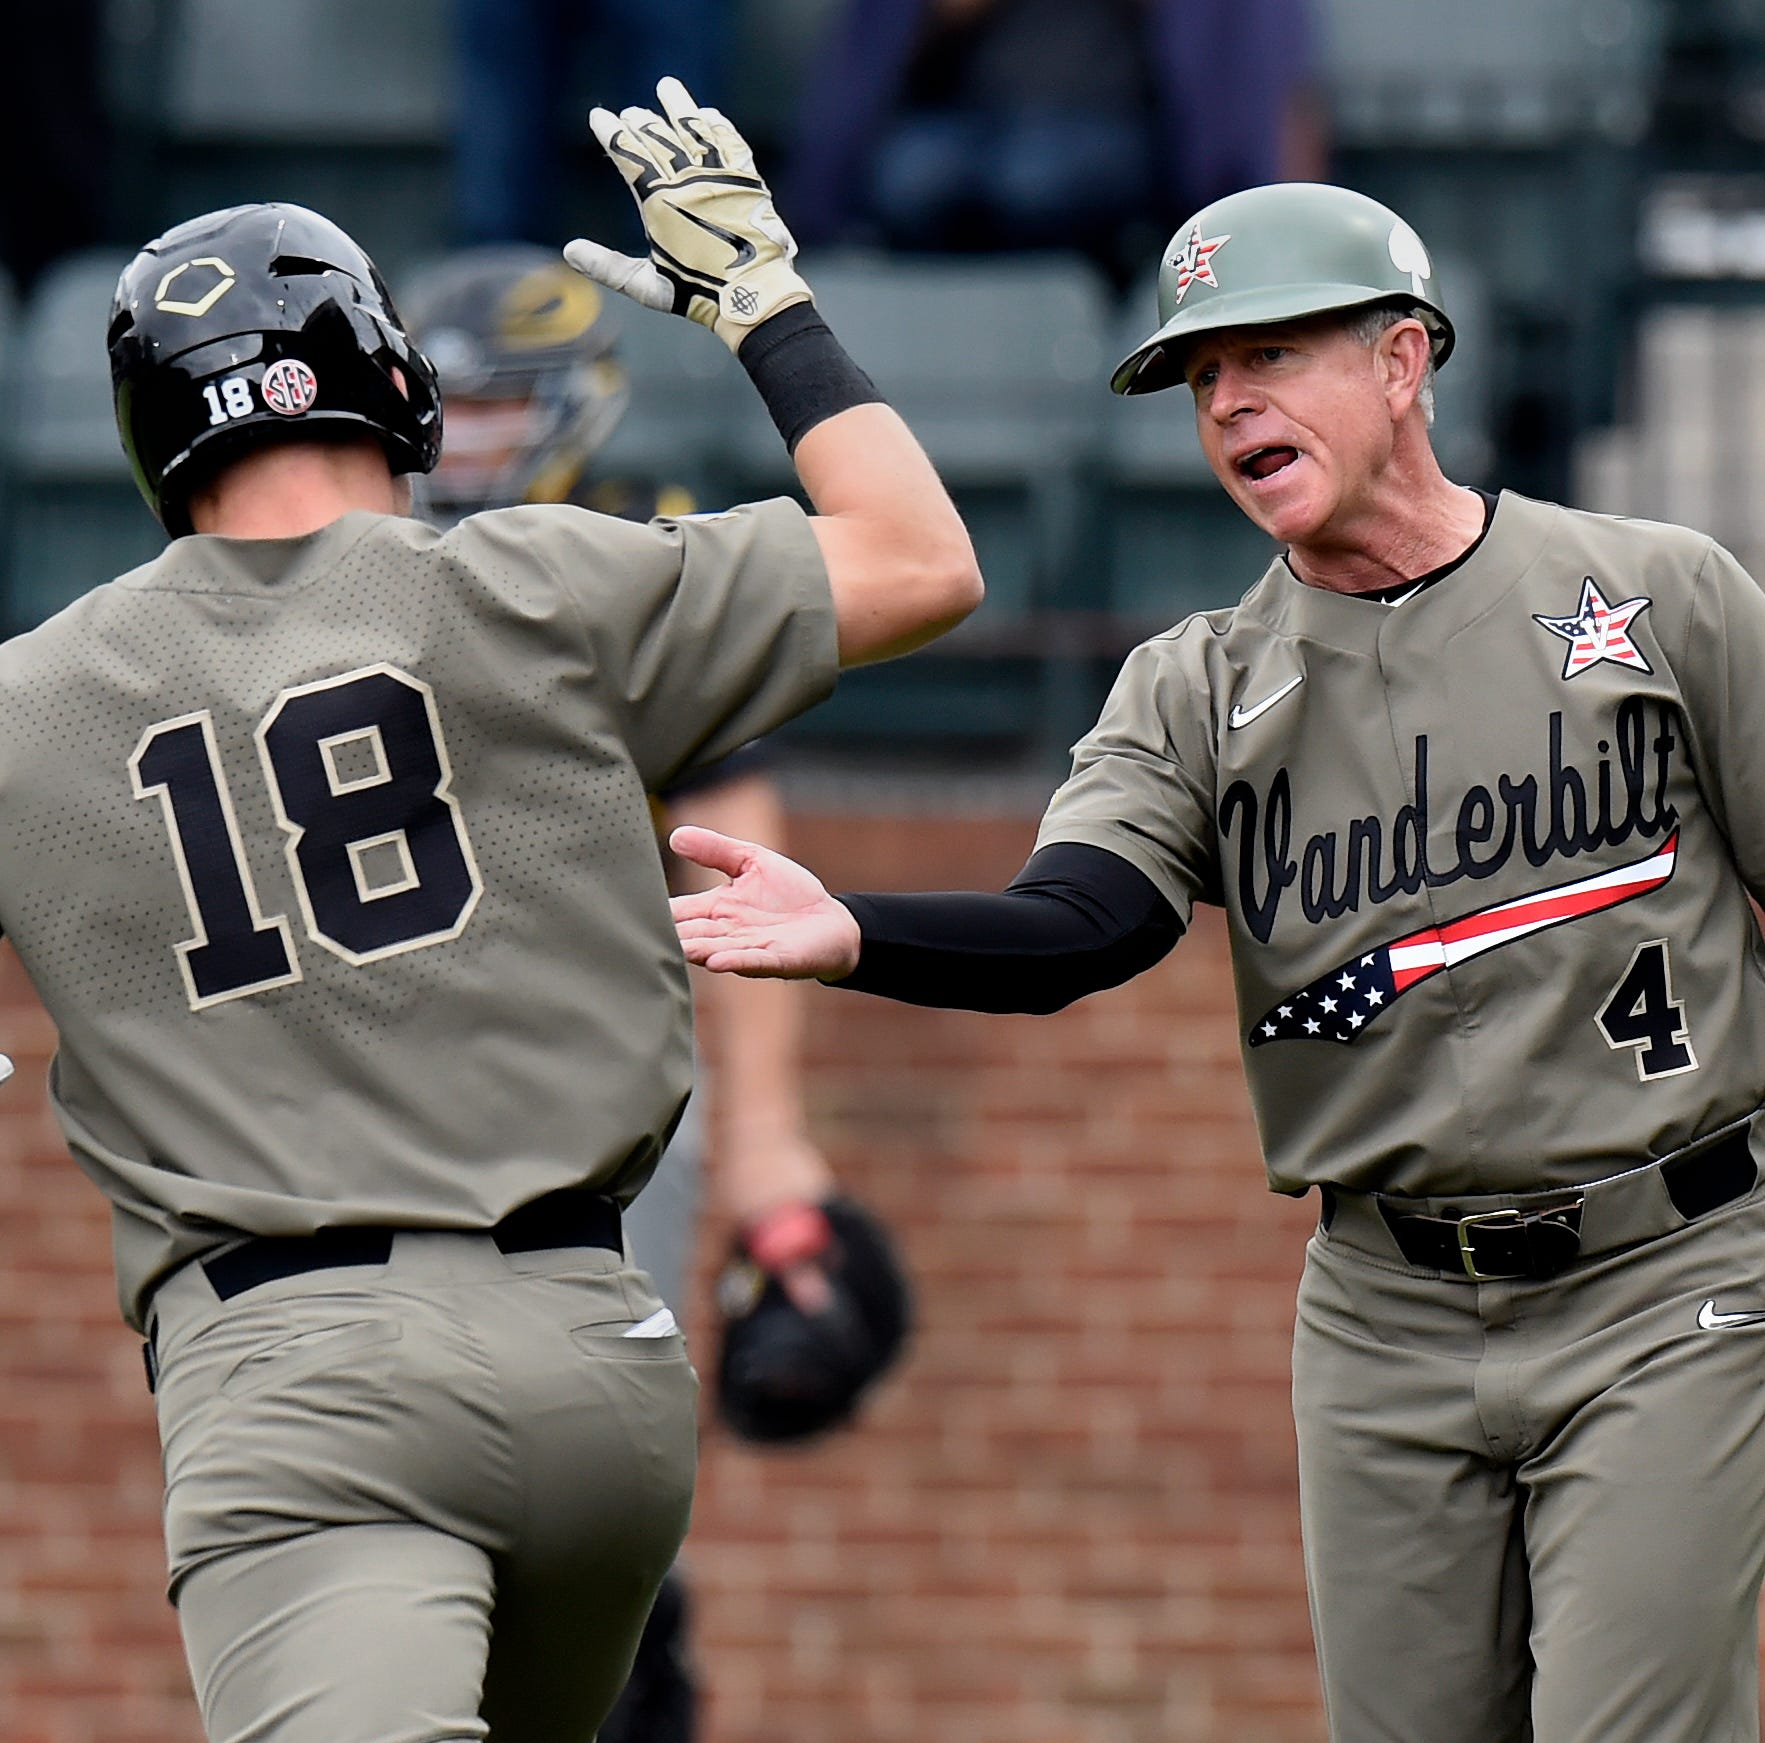 Already leading SEC, is Vanderbilt the best team in college baseball?